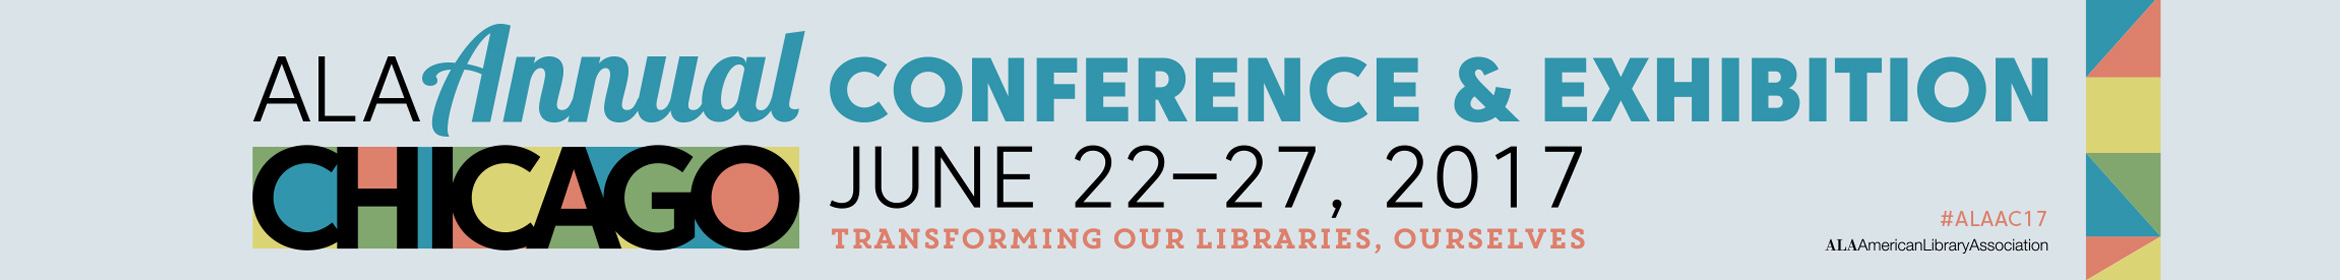 2017 ALA Annual Conference Main banner